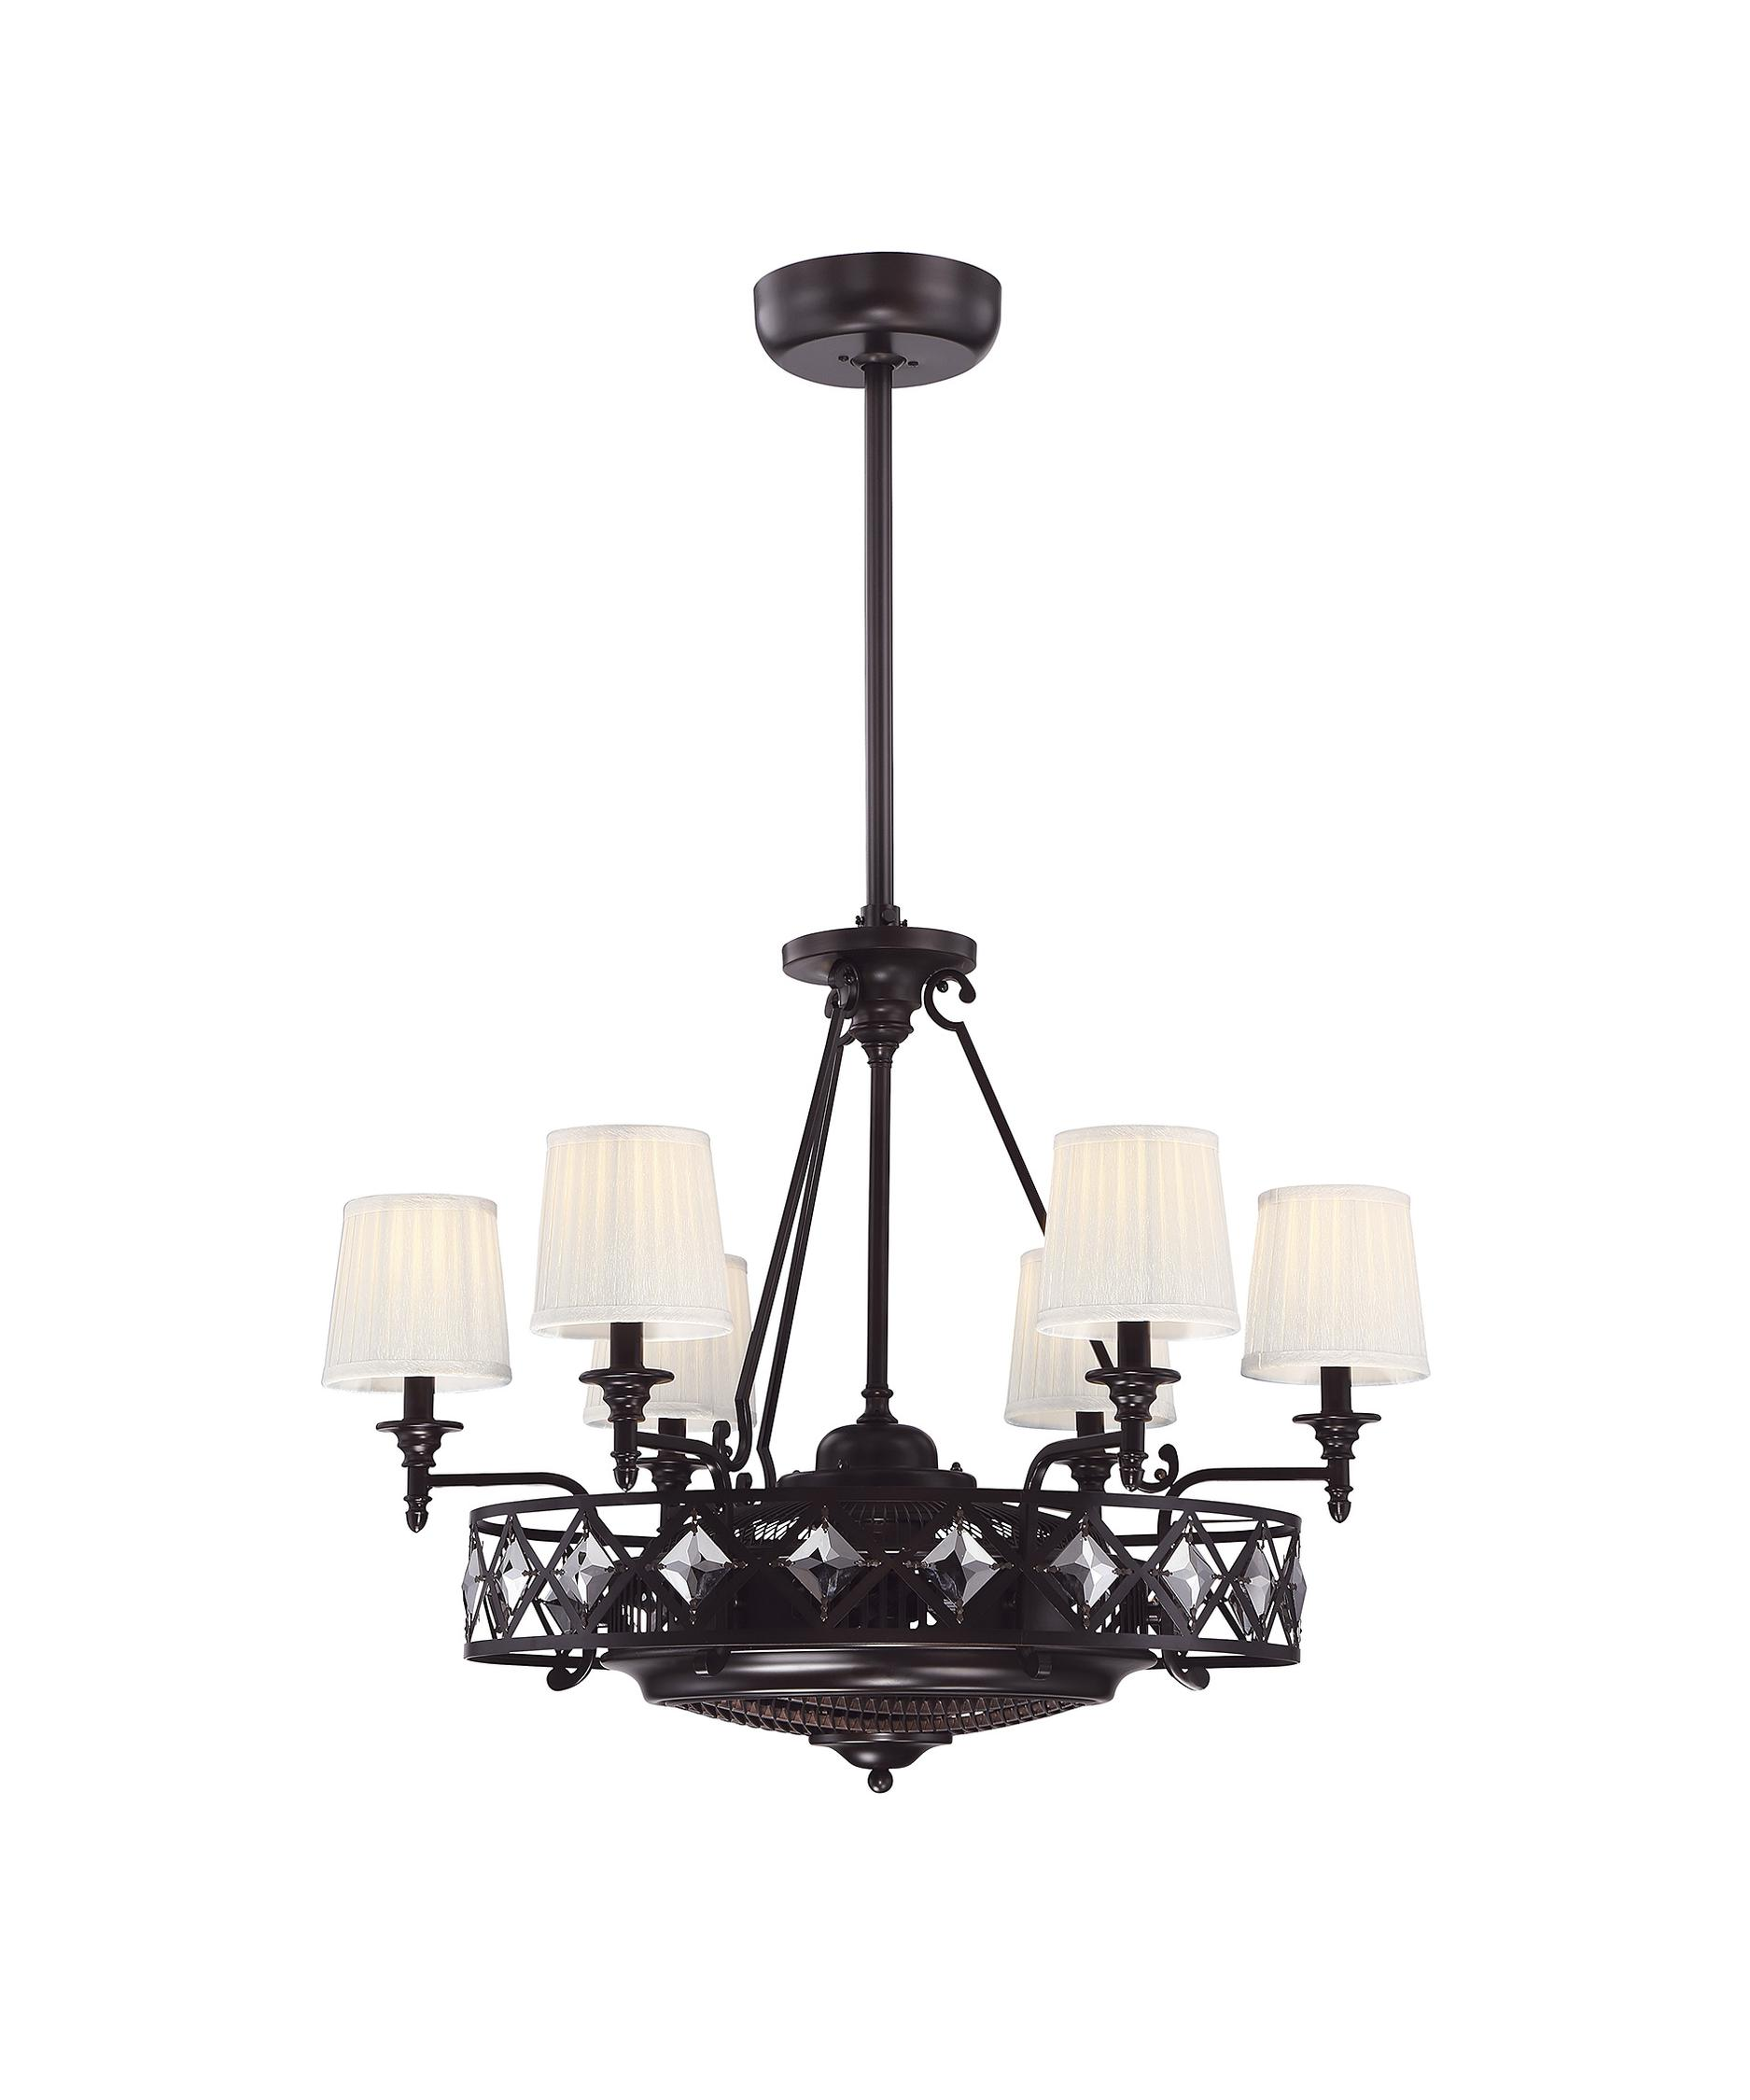 Savoy House Cambria 32 Inch Chandelier Ceiling Fan | Capitol ...:Savoy House Cambria 32 Inch Chandelier Ceiling Fan | Capitol Lighting  1-800lighting.com,Lighting